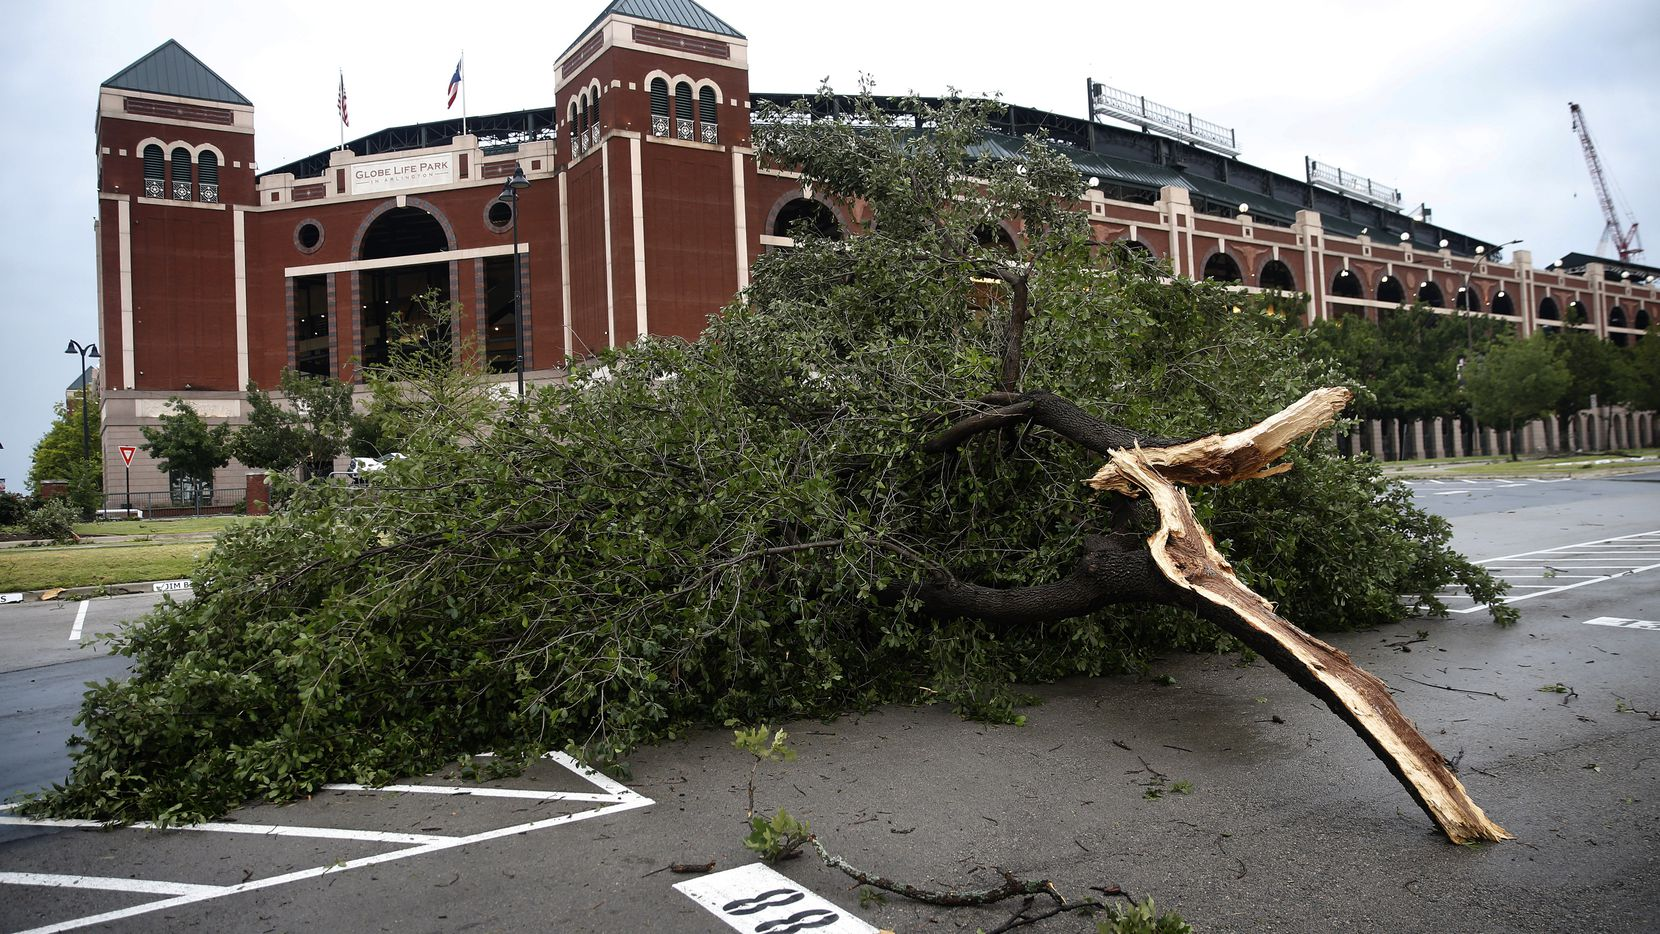 A large oak tree limb landed about 100 yards from its trunk, landing in the parking lot outside Globe Life Park in Arlington, Sunday, June 16, 2019. A path of high winds ripped through a neighborhood near the ballpark as thunderstorms  rolled through the Metroplex.